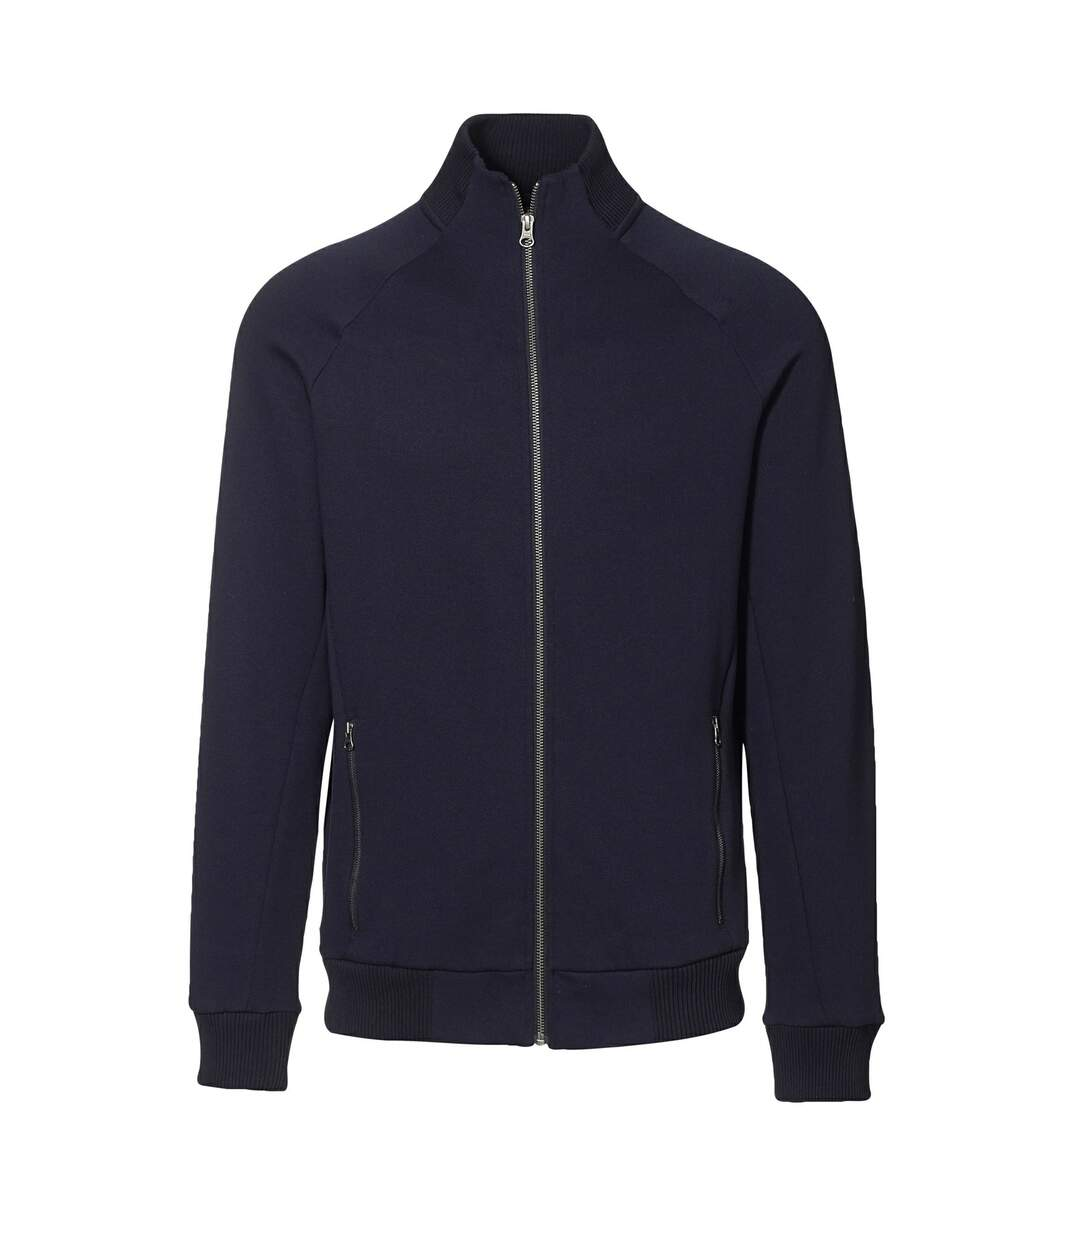 ID Mens Fitted Full Zip Fleece Jacket (Navy) - UTID389